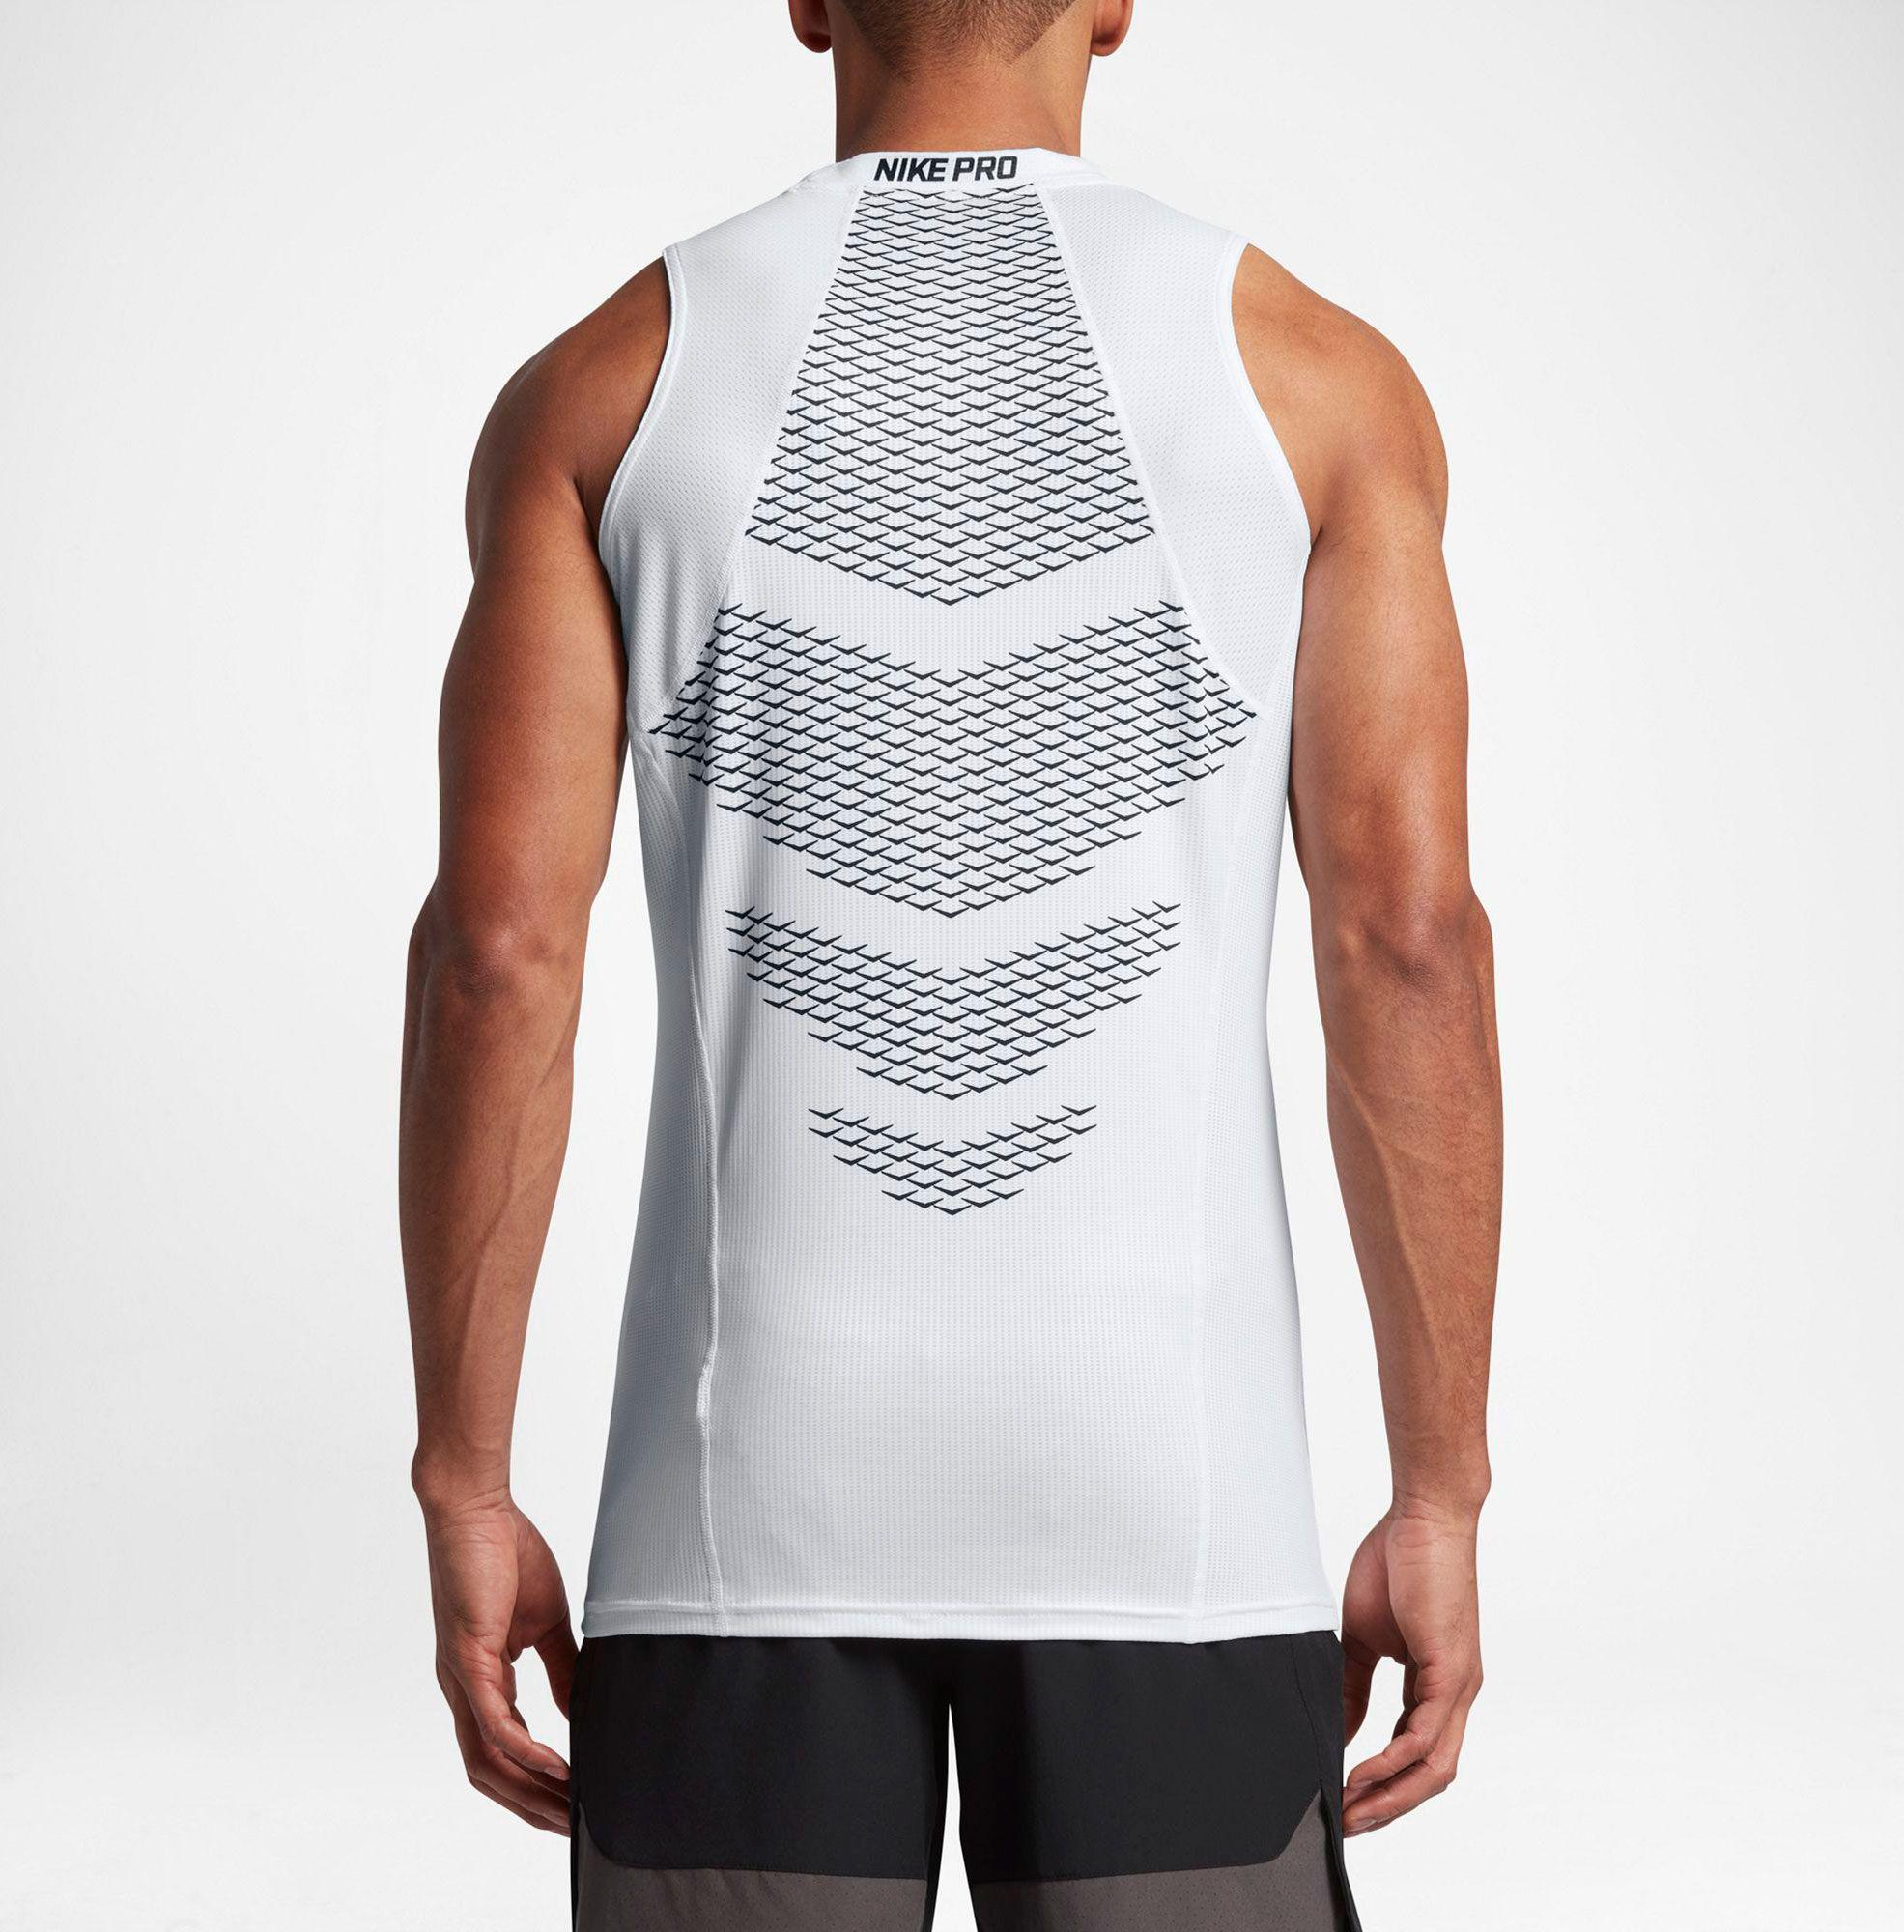 08ae3a1173cac Lyst - Nike Pro Hypercool Sleeveless Shirt in White for Men